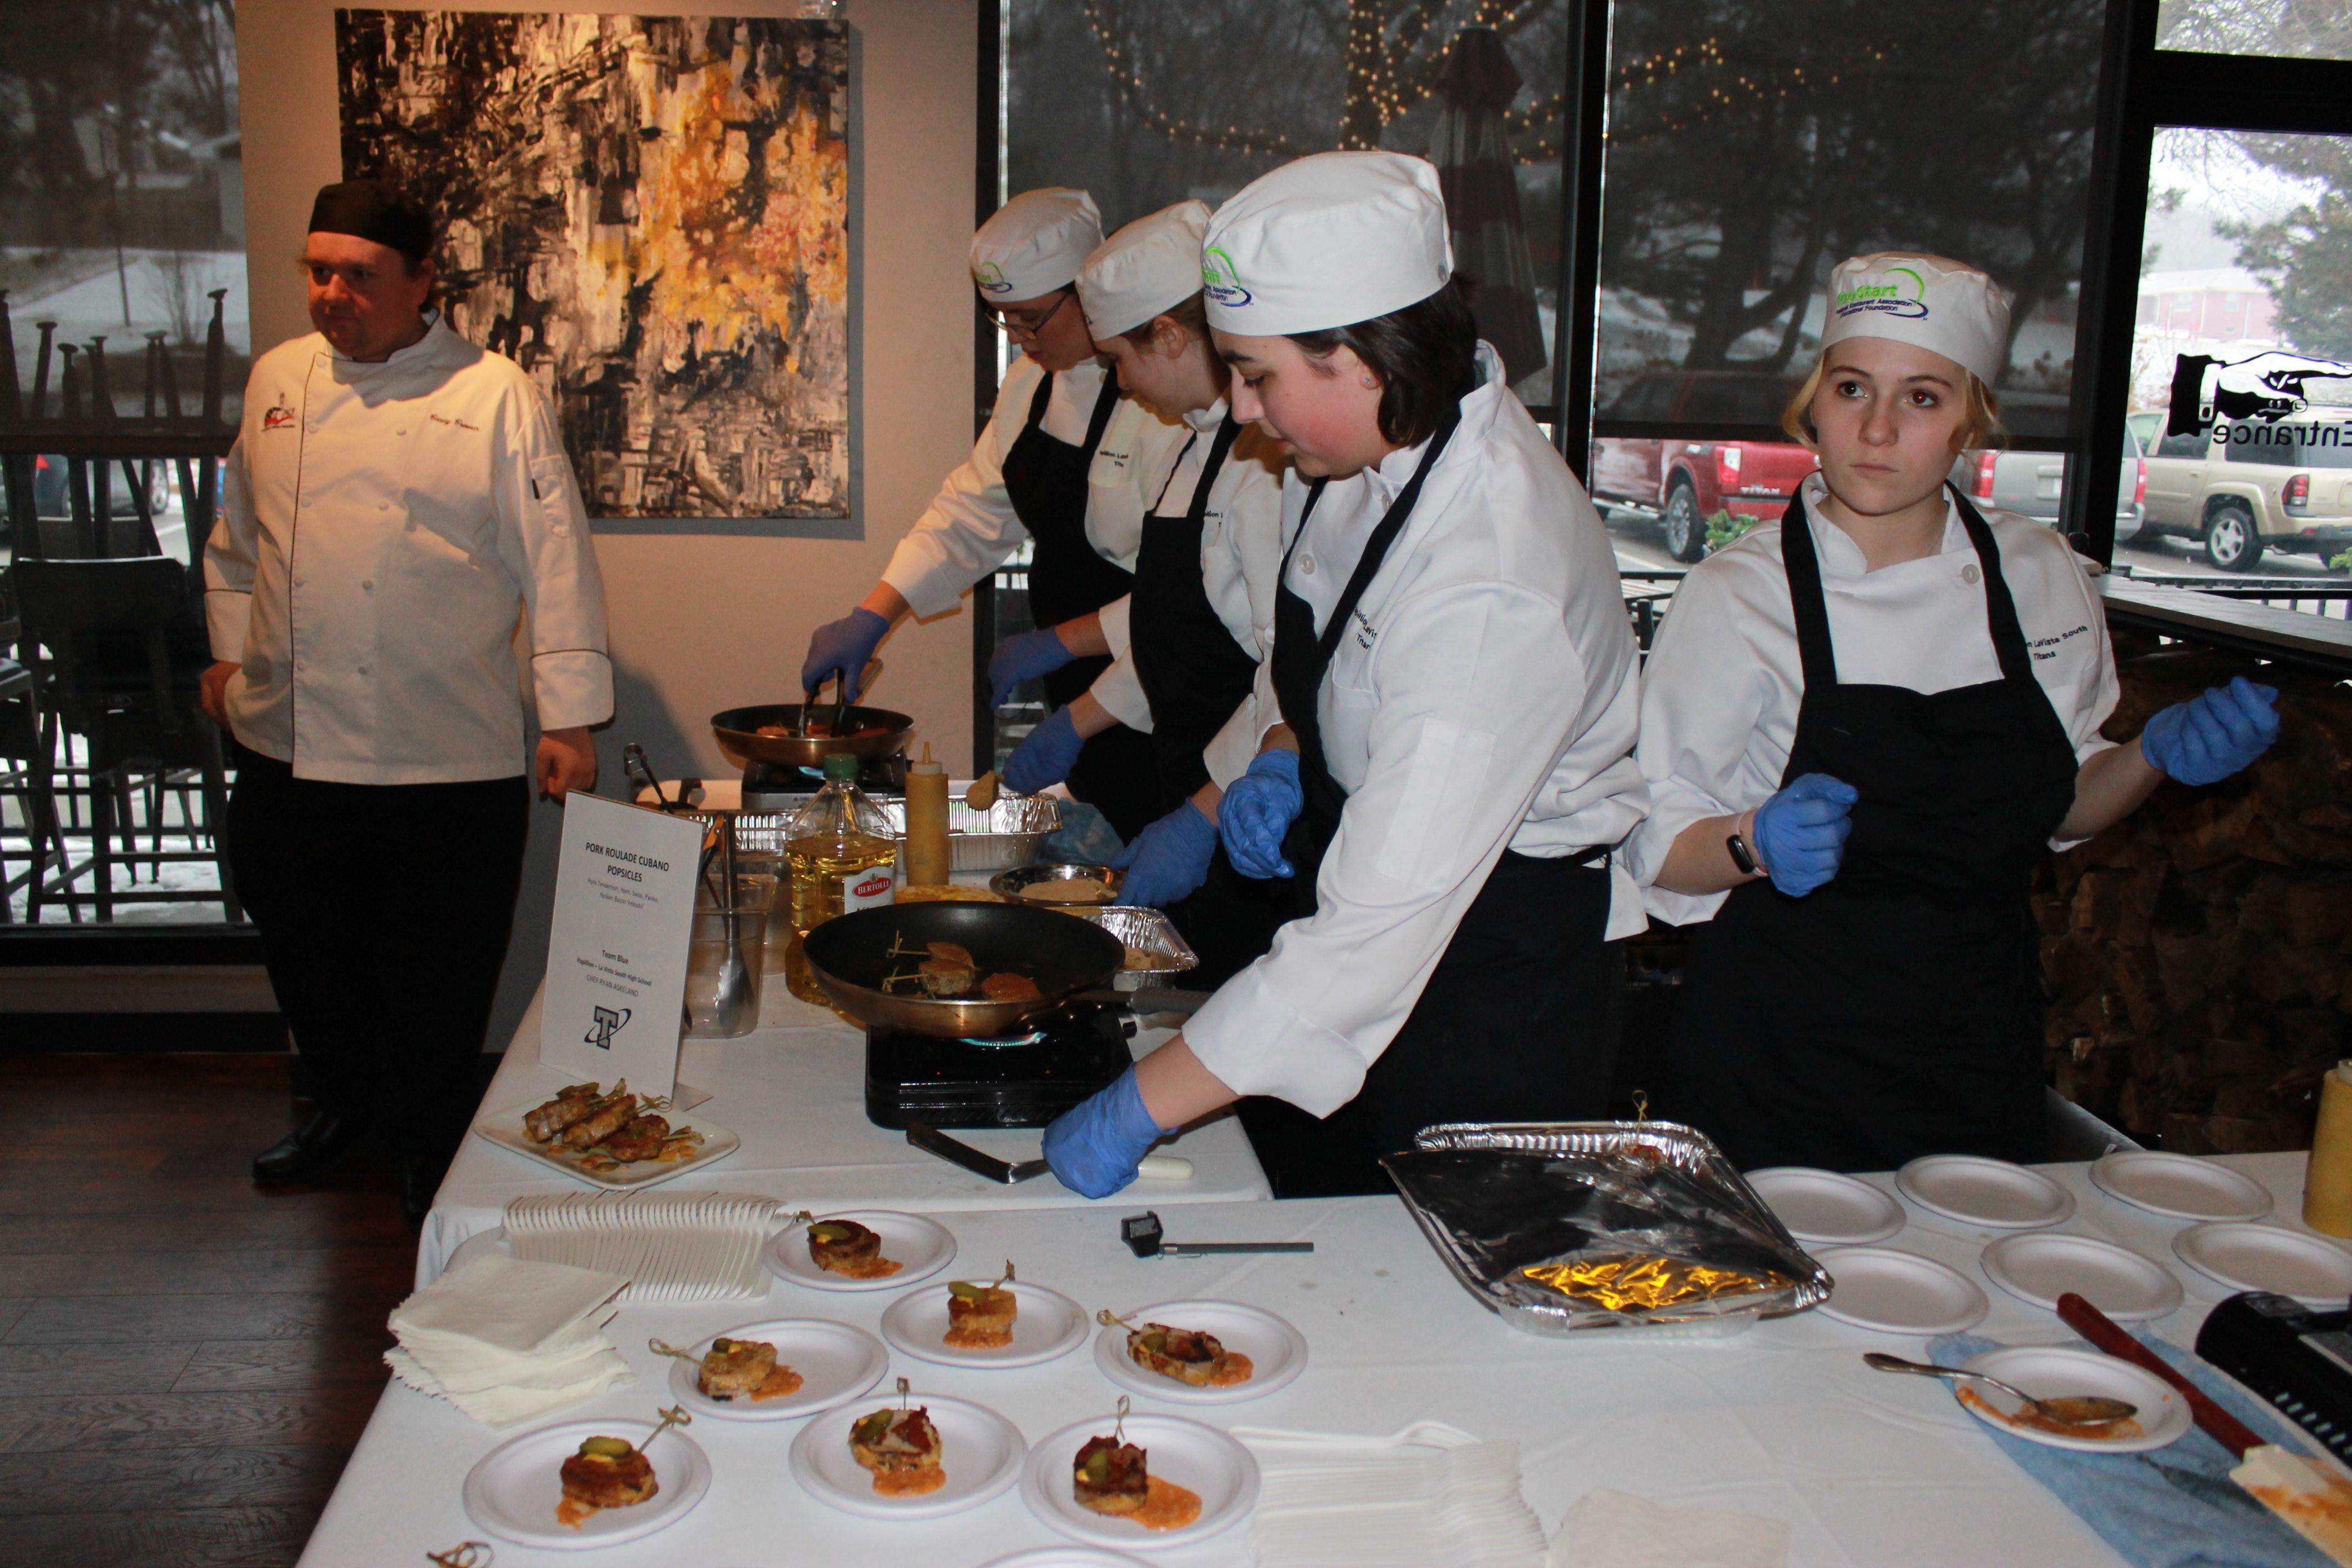 prostart students work at fundraiser